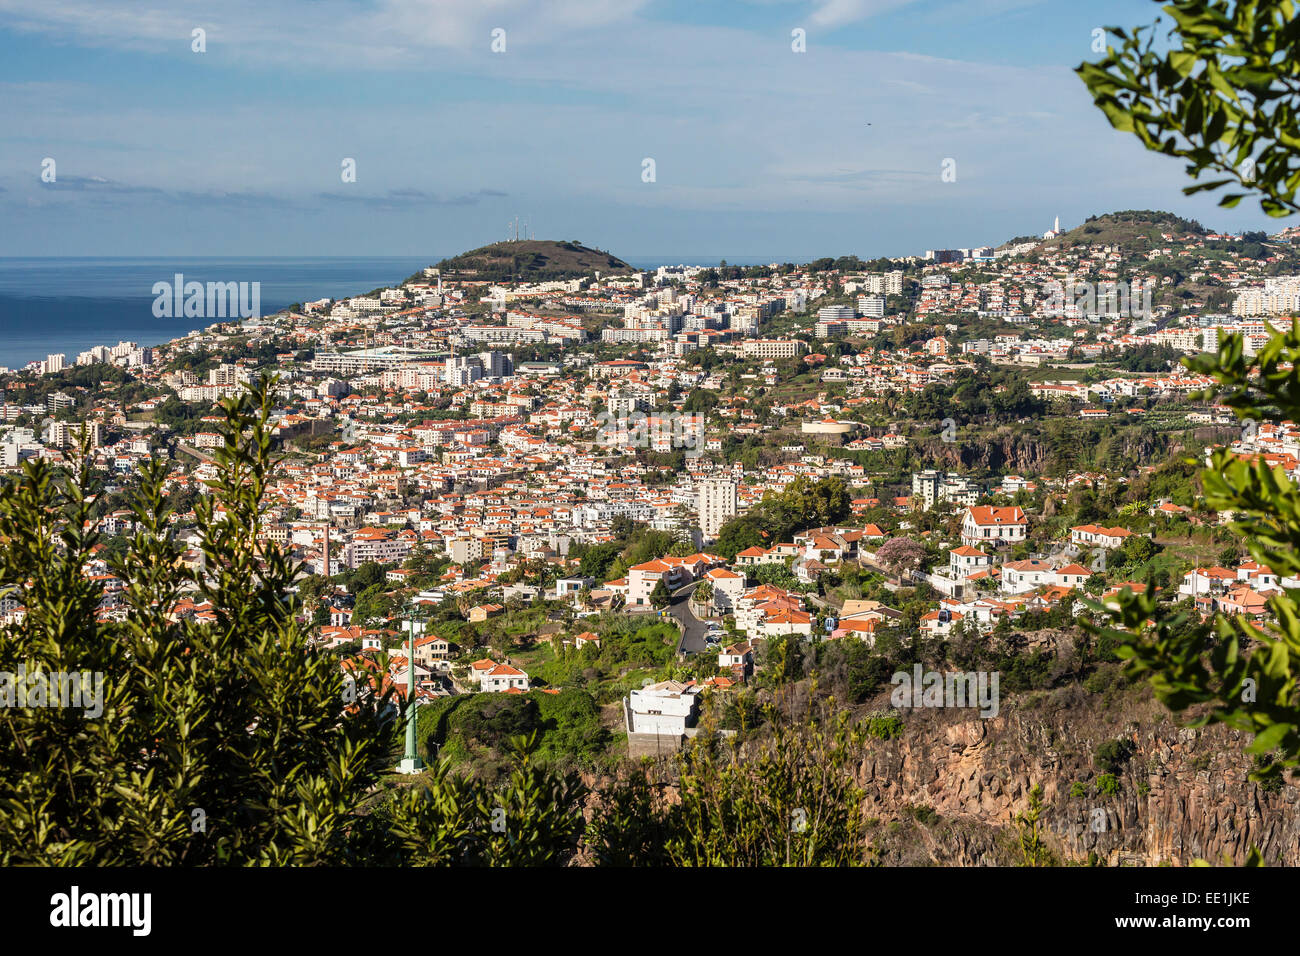 View from above the heart of the capital city of Funchal, Madeira, Portugal, Atlantic, Europe - Stock Image